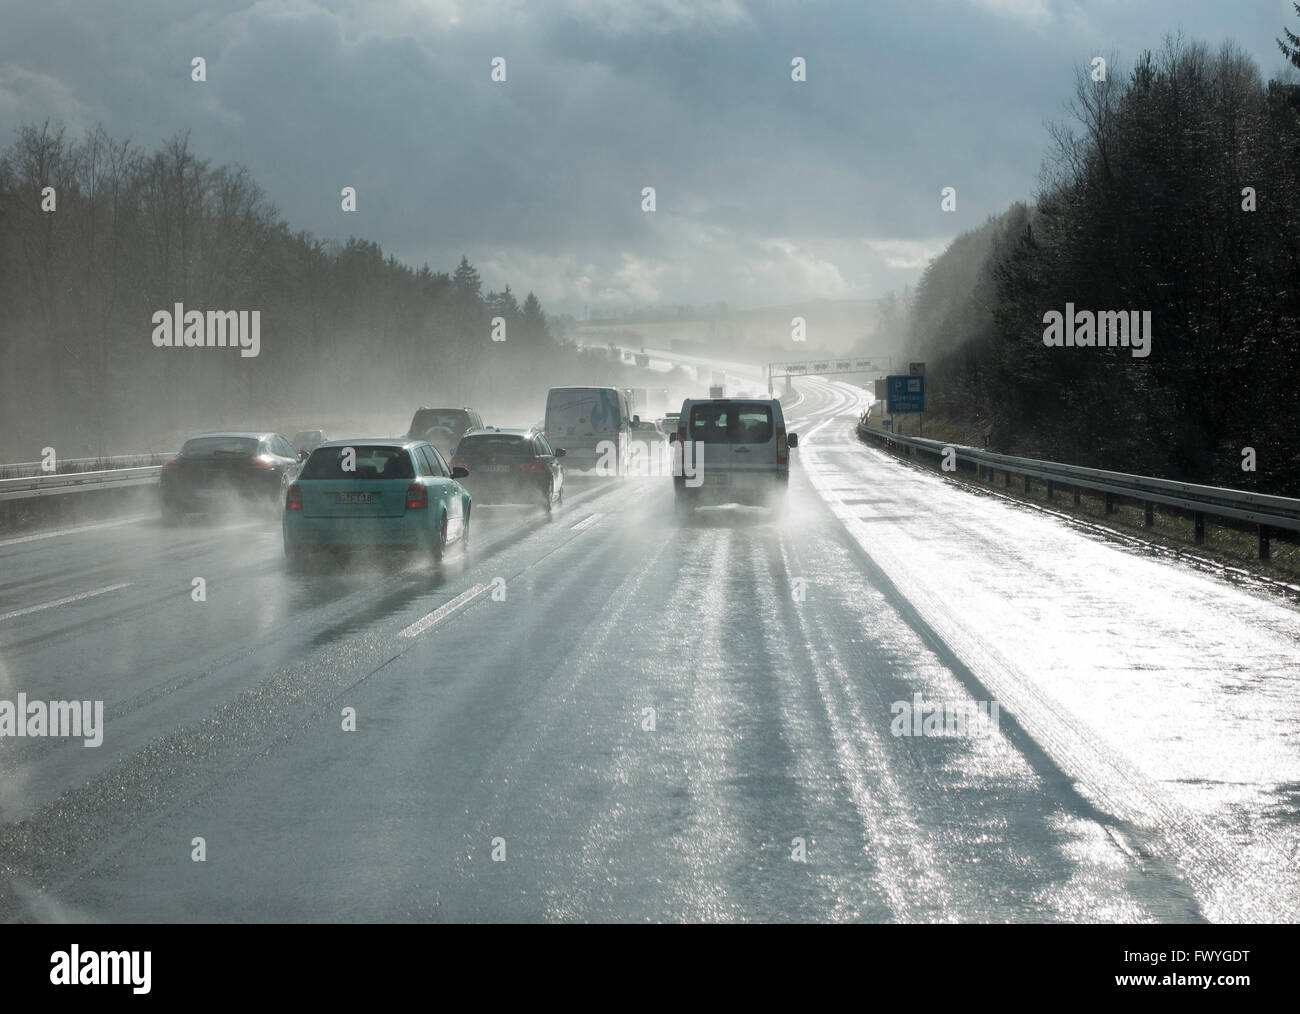 Cars overtaking in the rain, poor visibility, motorway A9, Thuringia, Germany - Stock Image